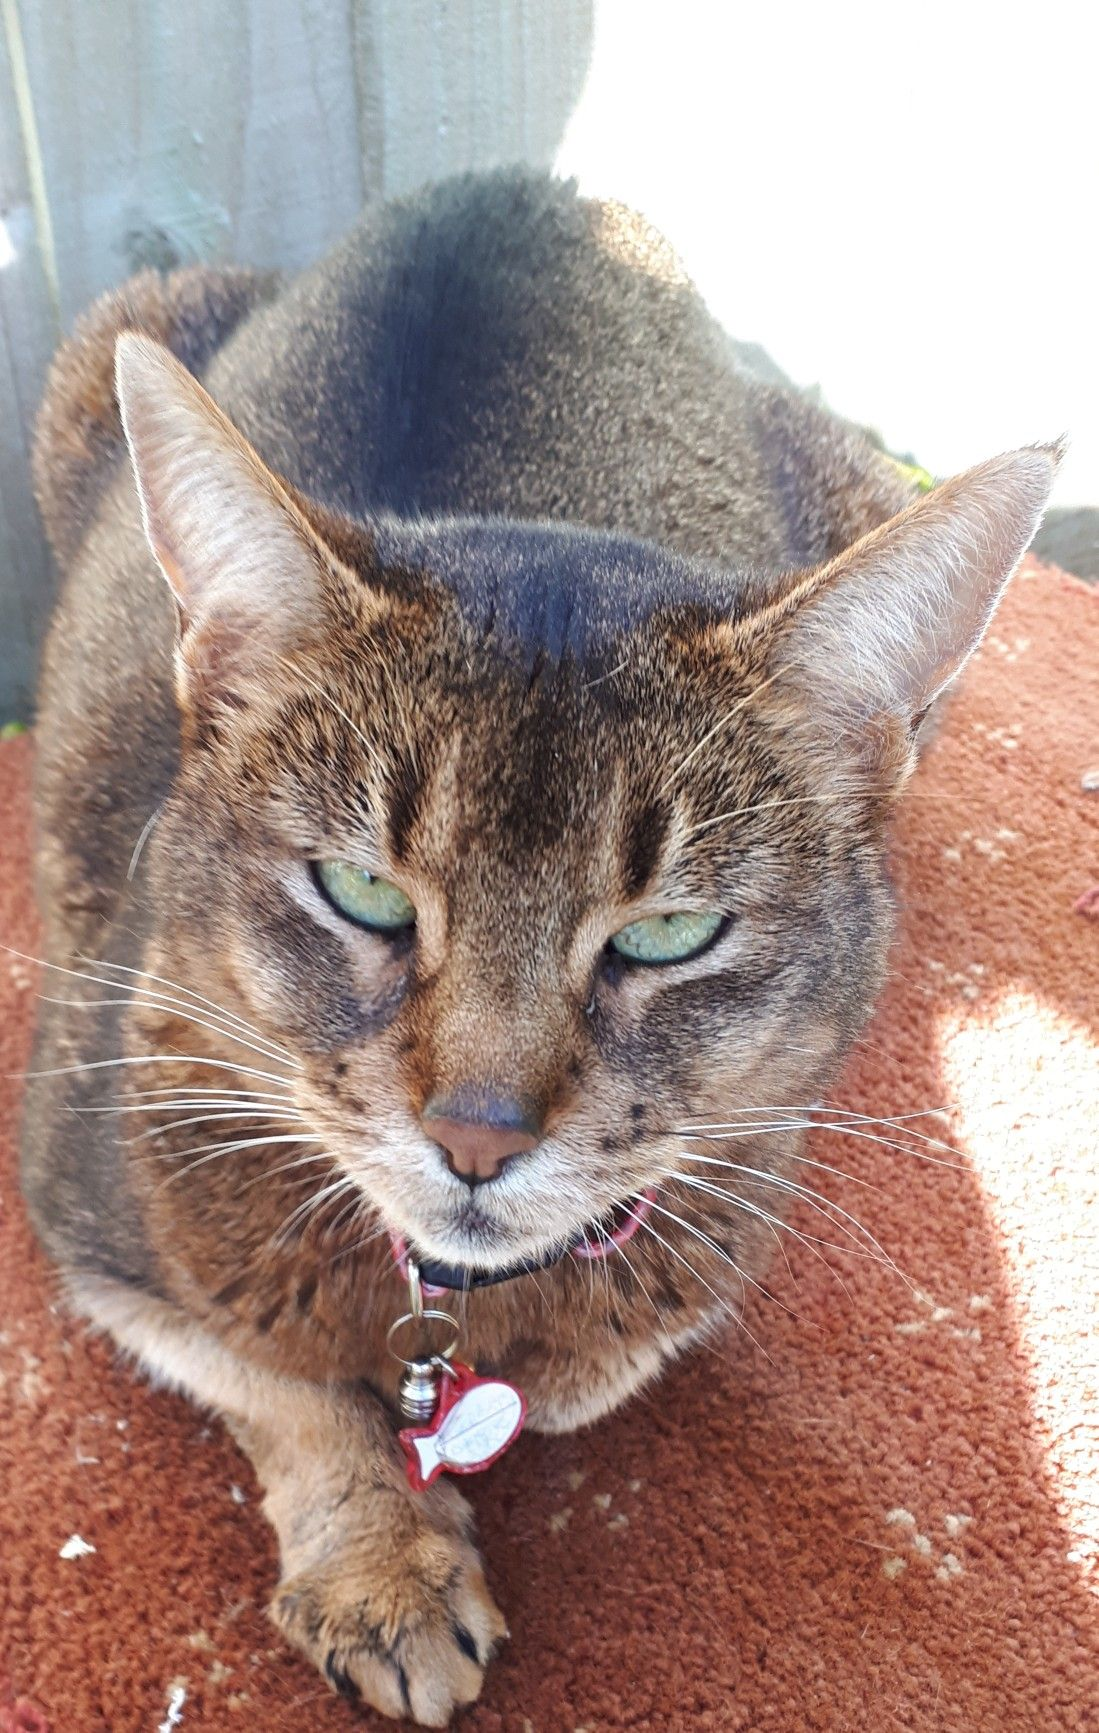 My abyssinian nella 10 years old and so gentle